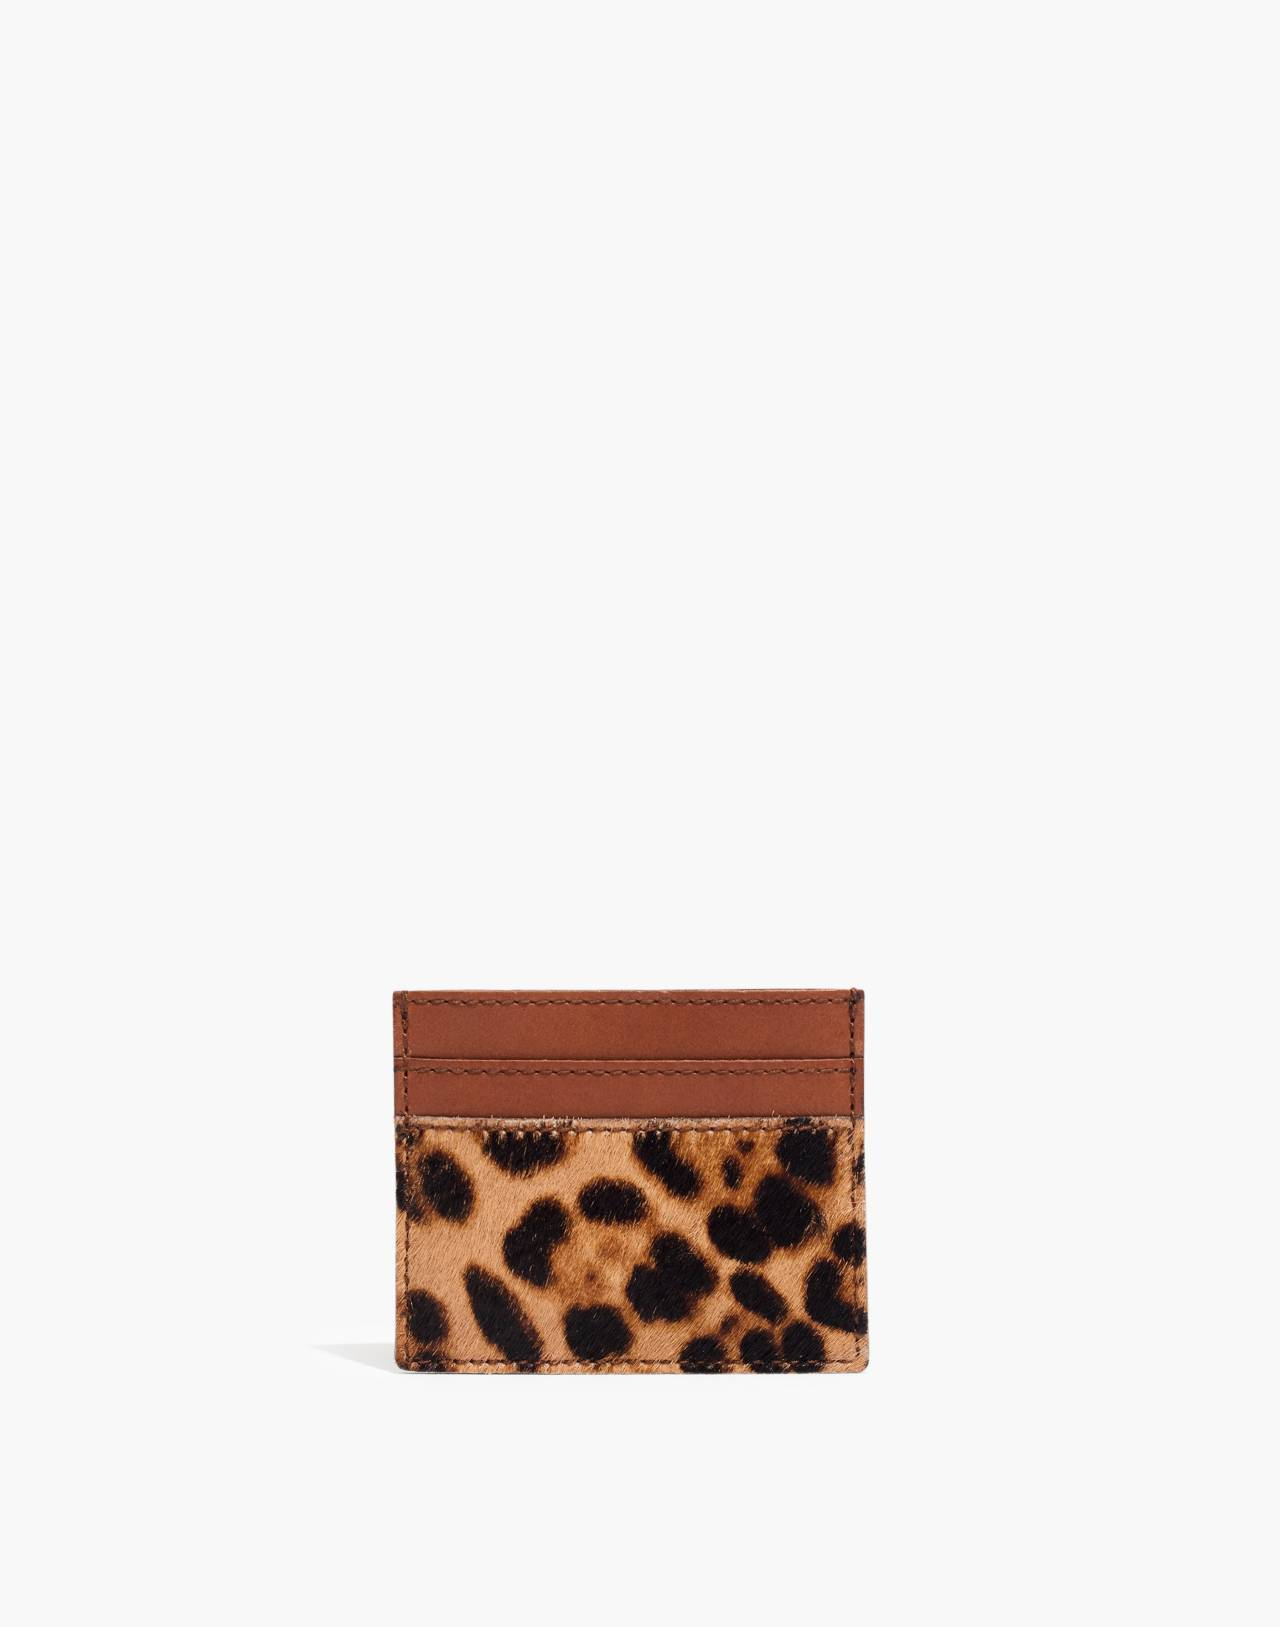 The Leather Card Case in Leopard Calf Hair in truffle multi image 1